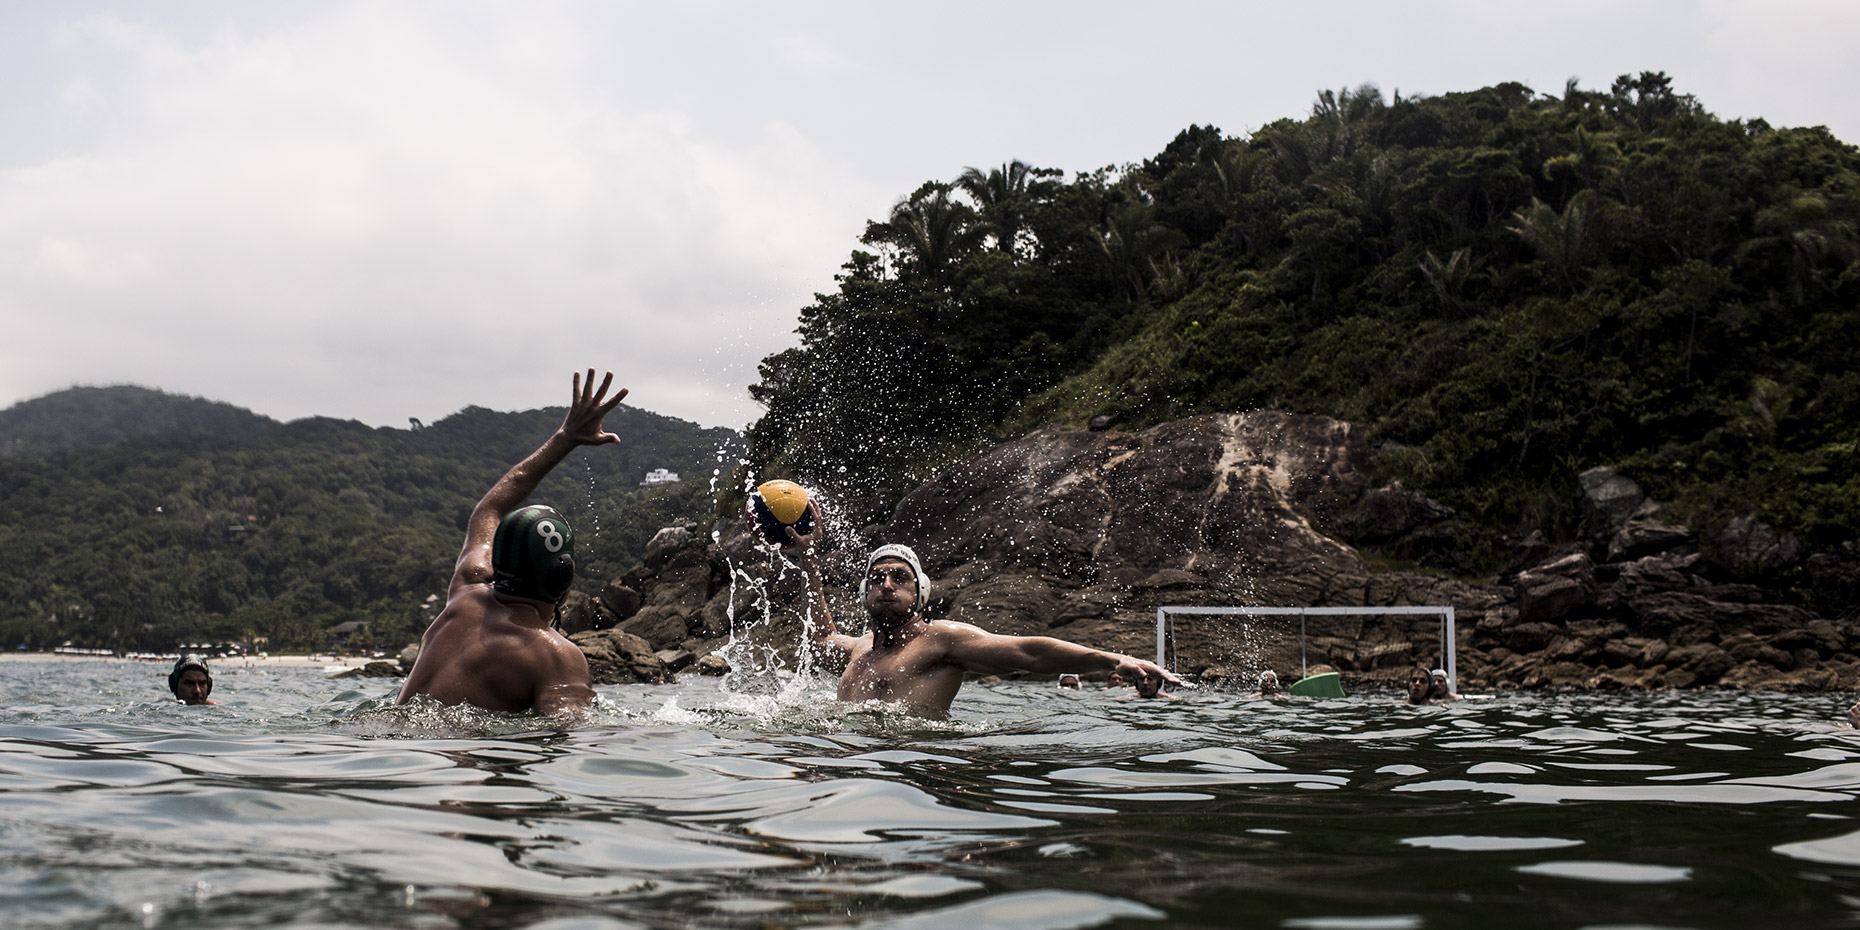 140208_Luiz_Waterpolo_0367